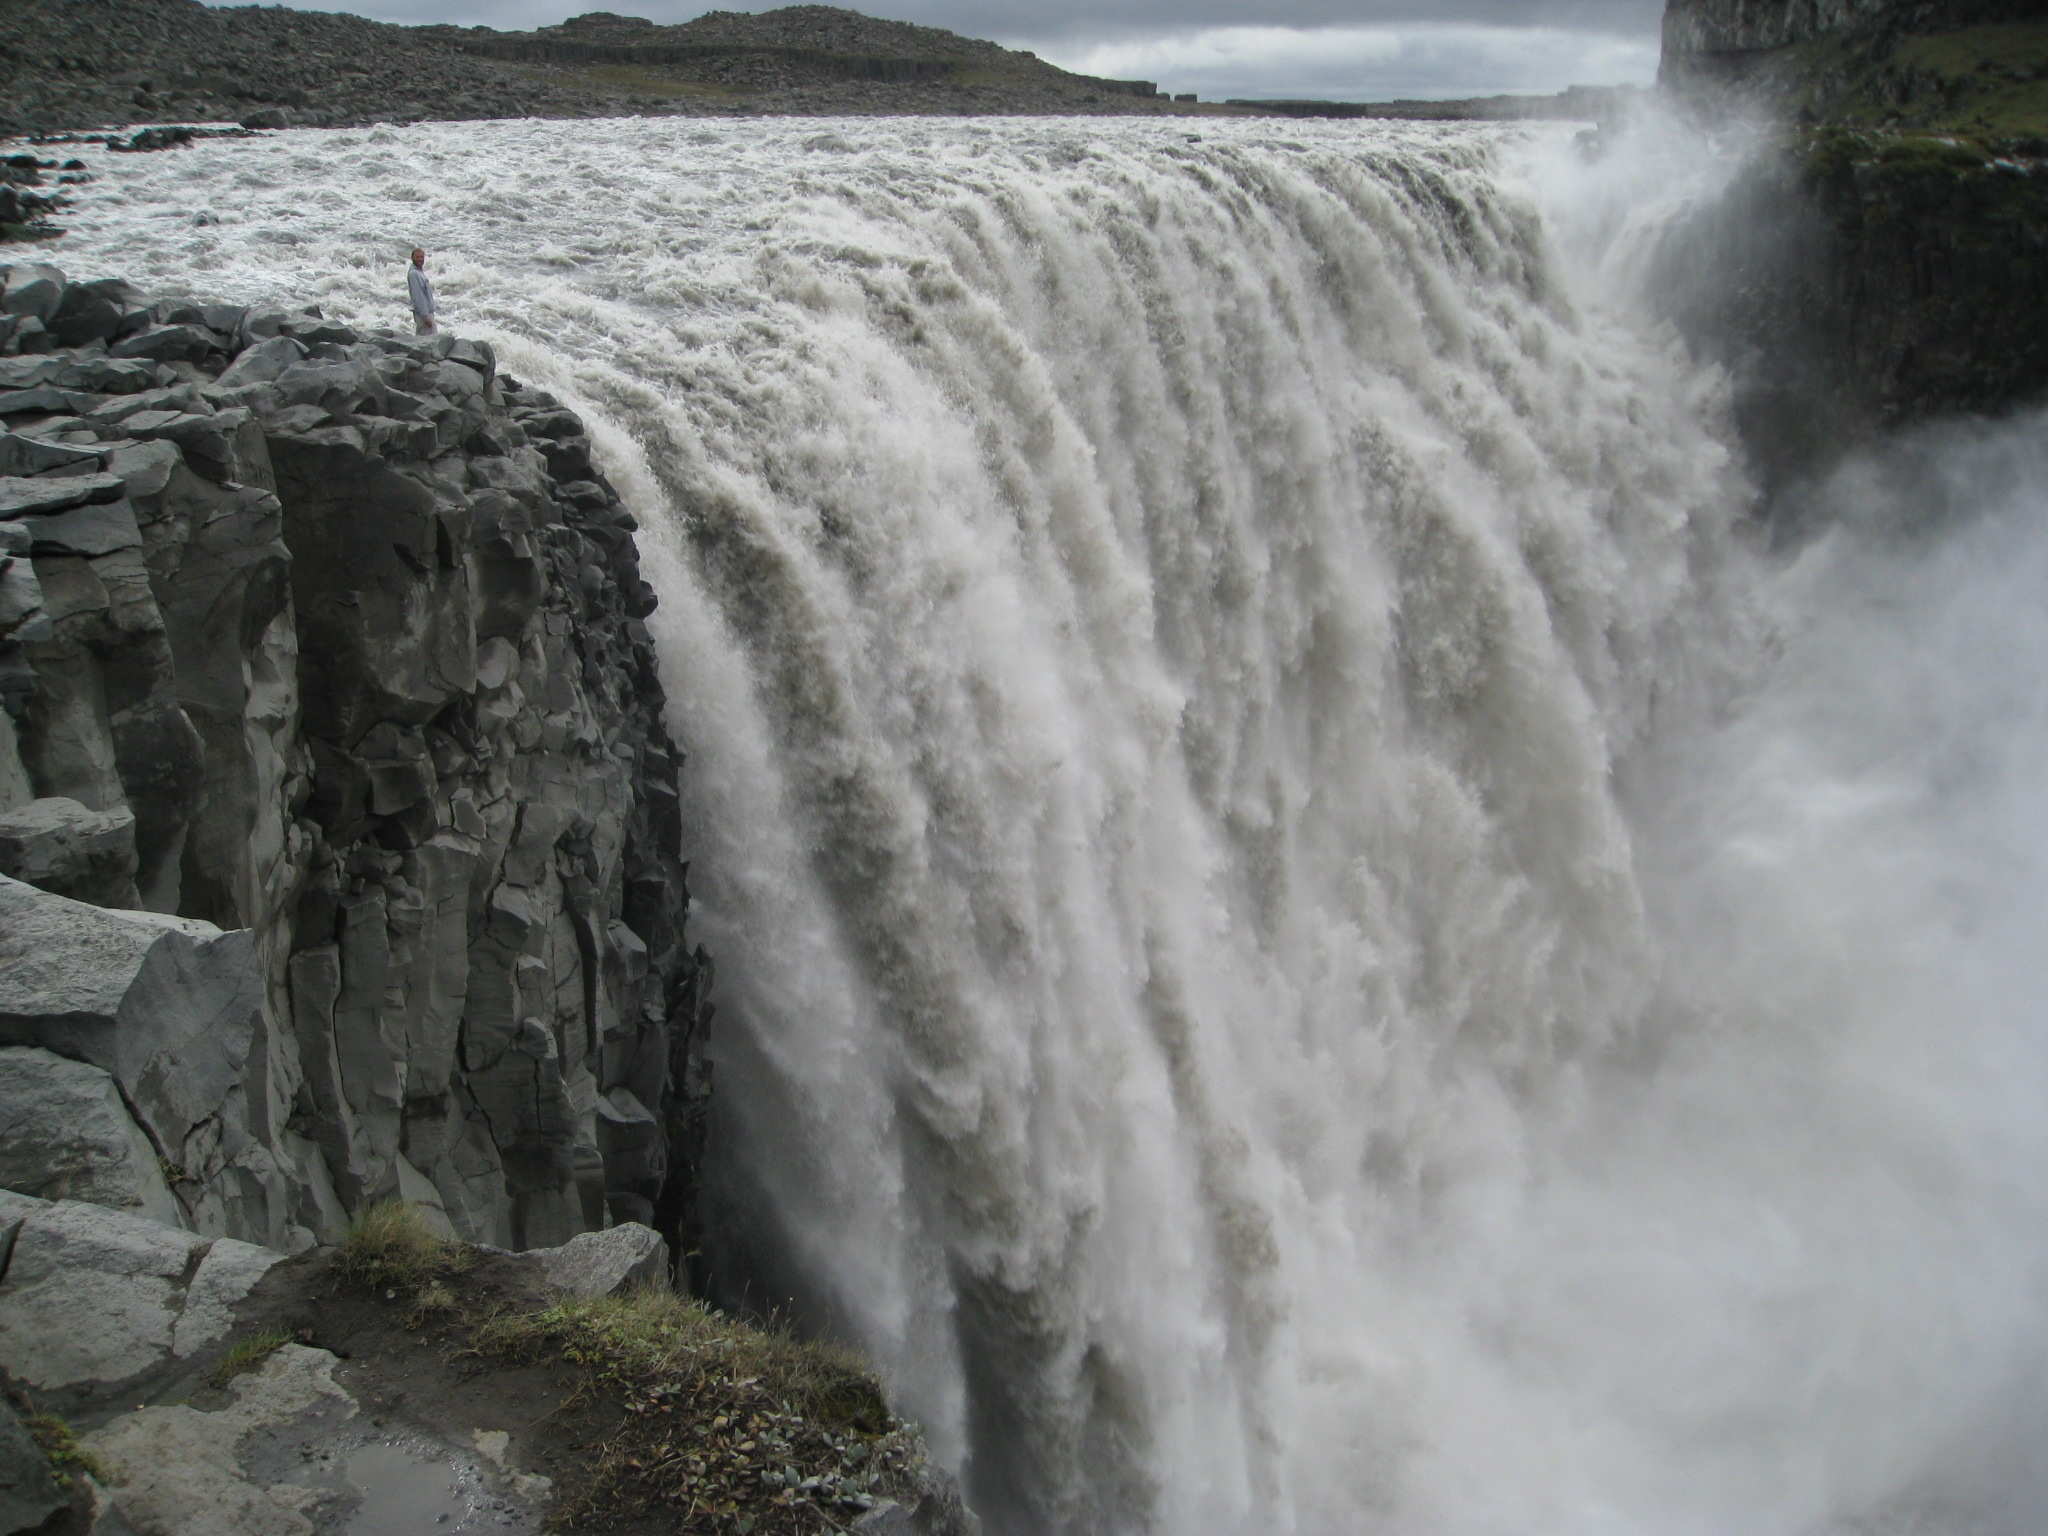 Dettifoss, the most powerful waterfall in Europe, is in Iceland